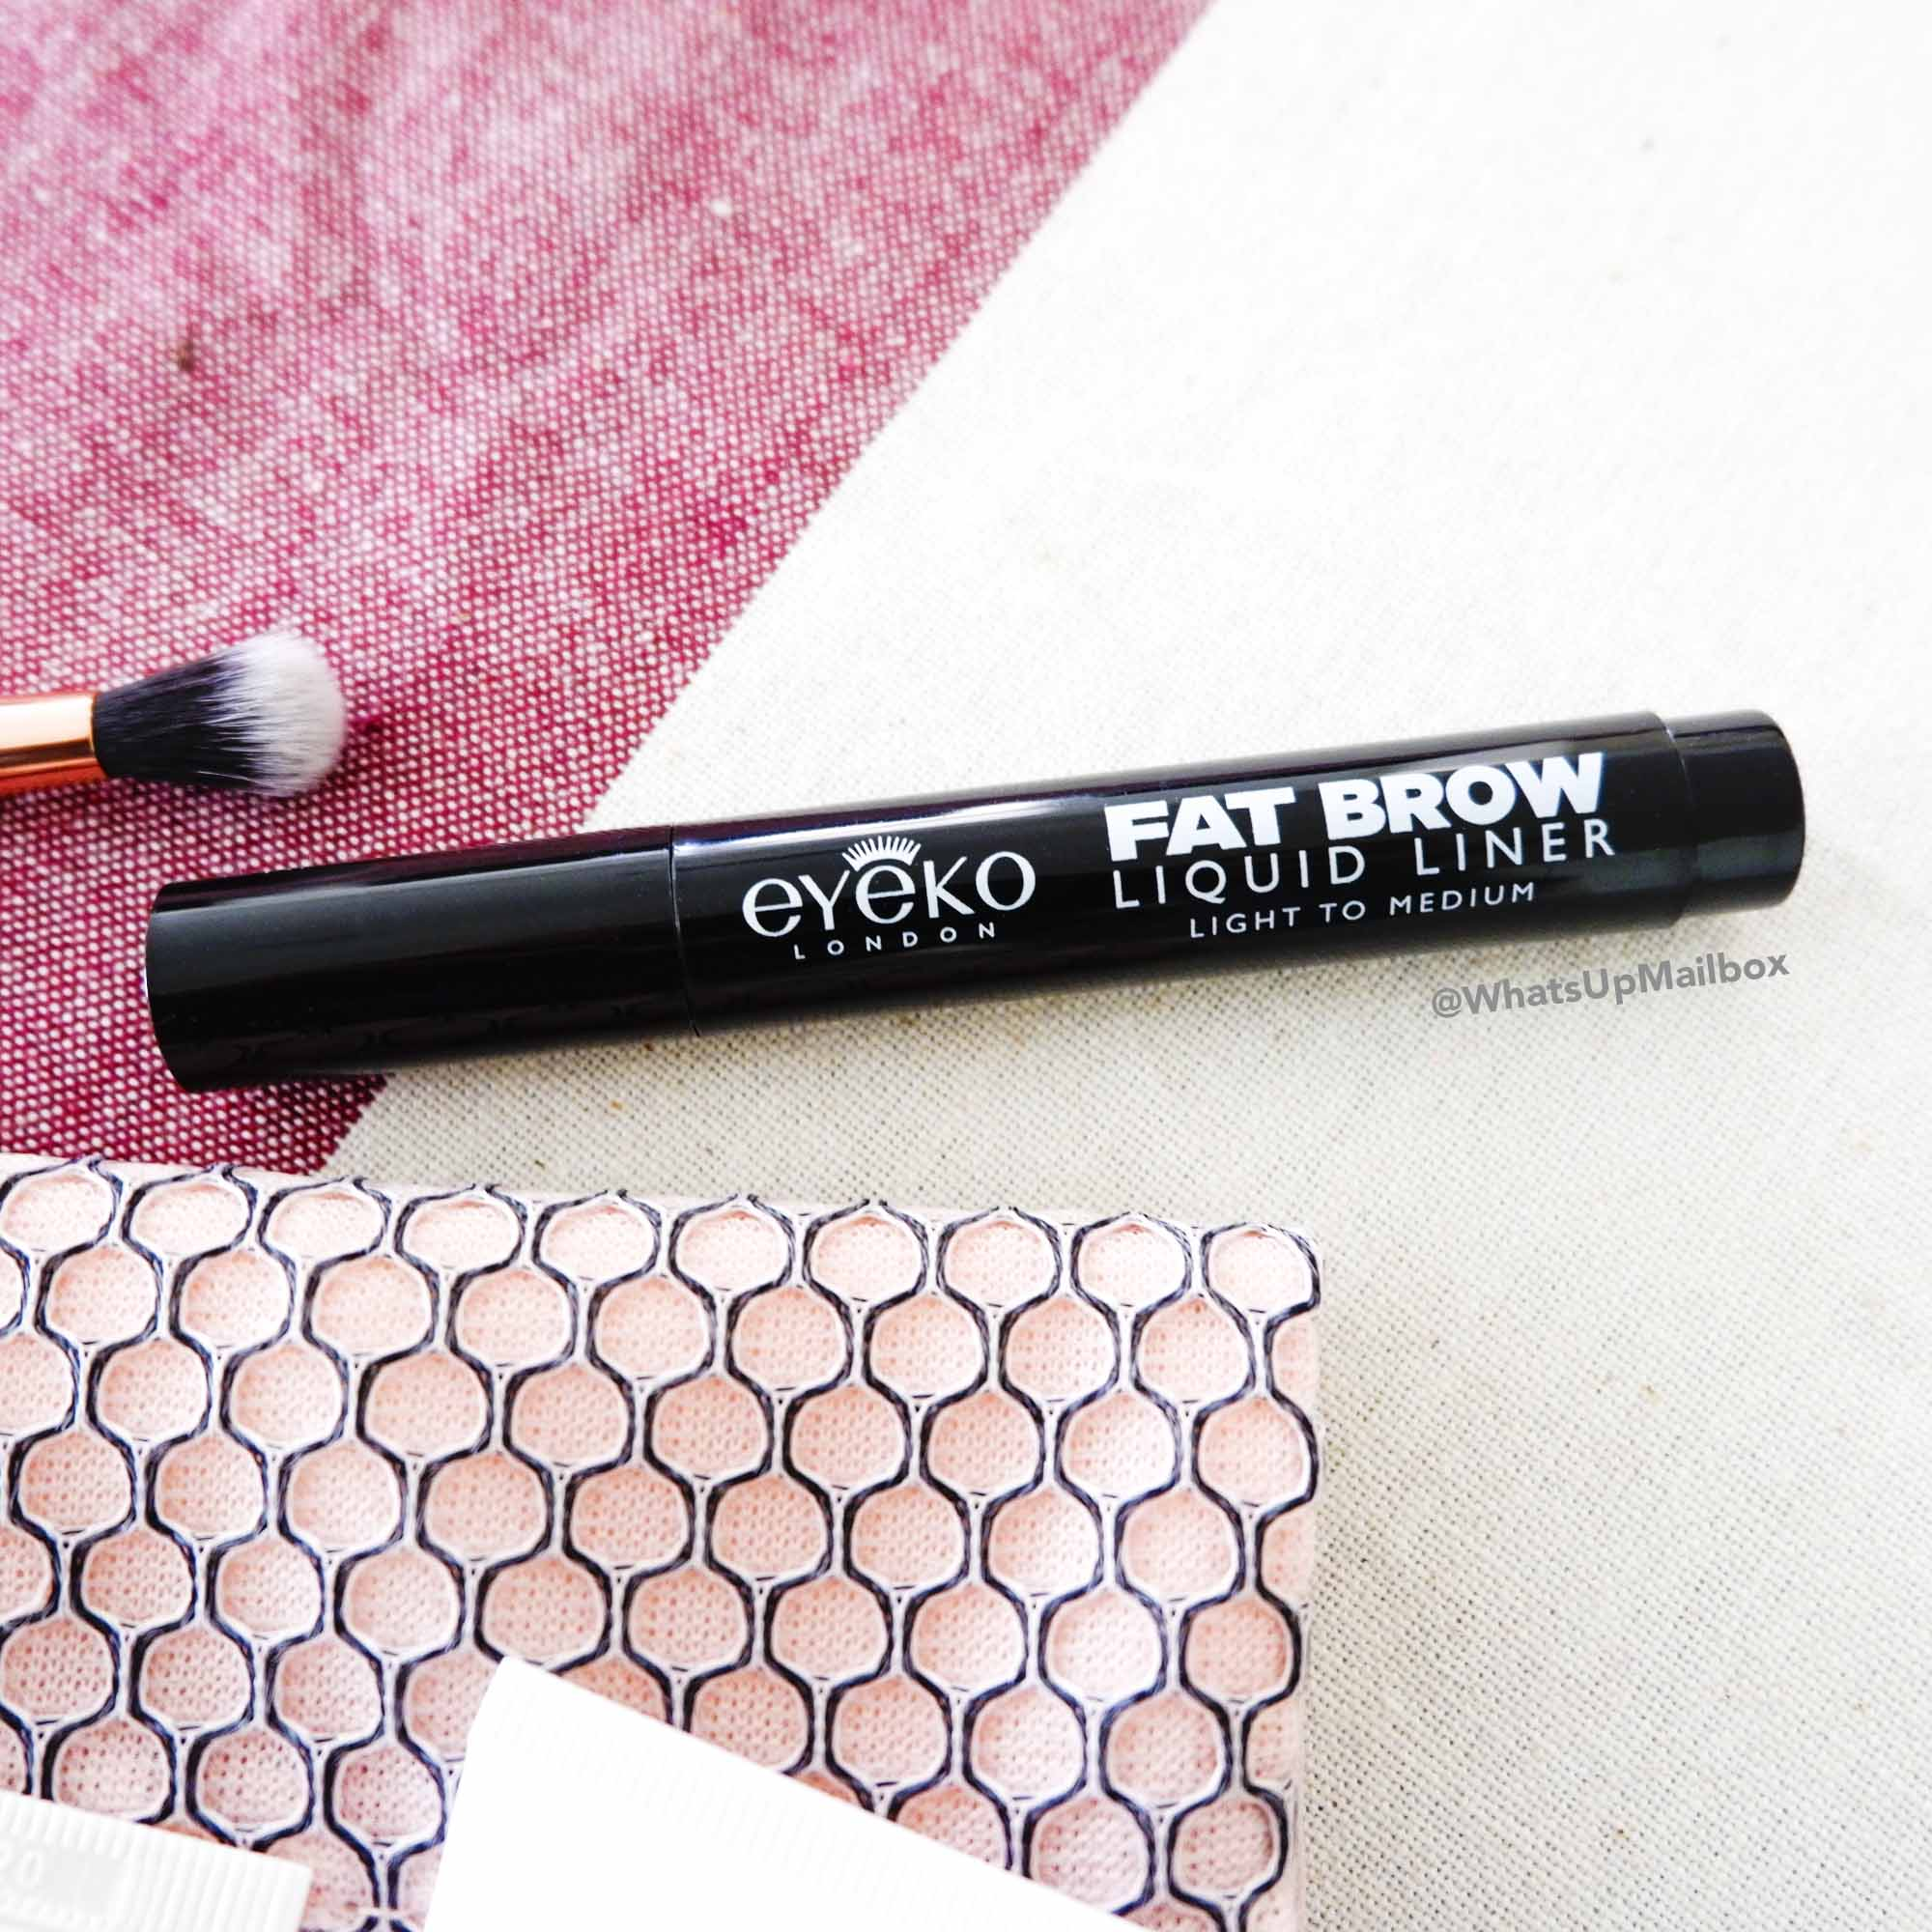 Eyeko London - Fat Brow Liquid Liner